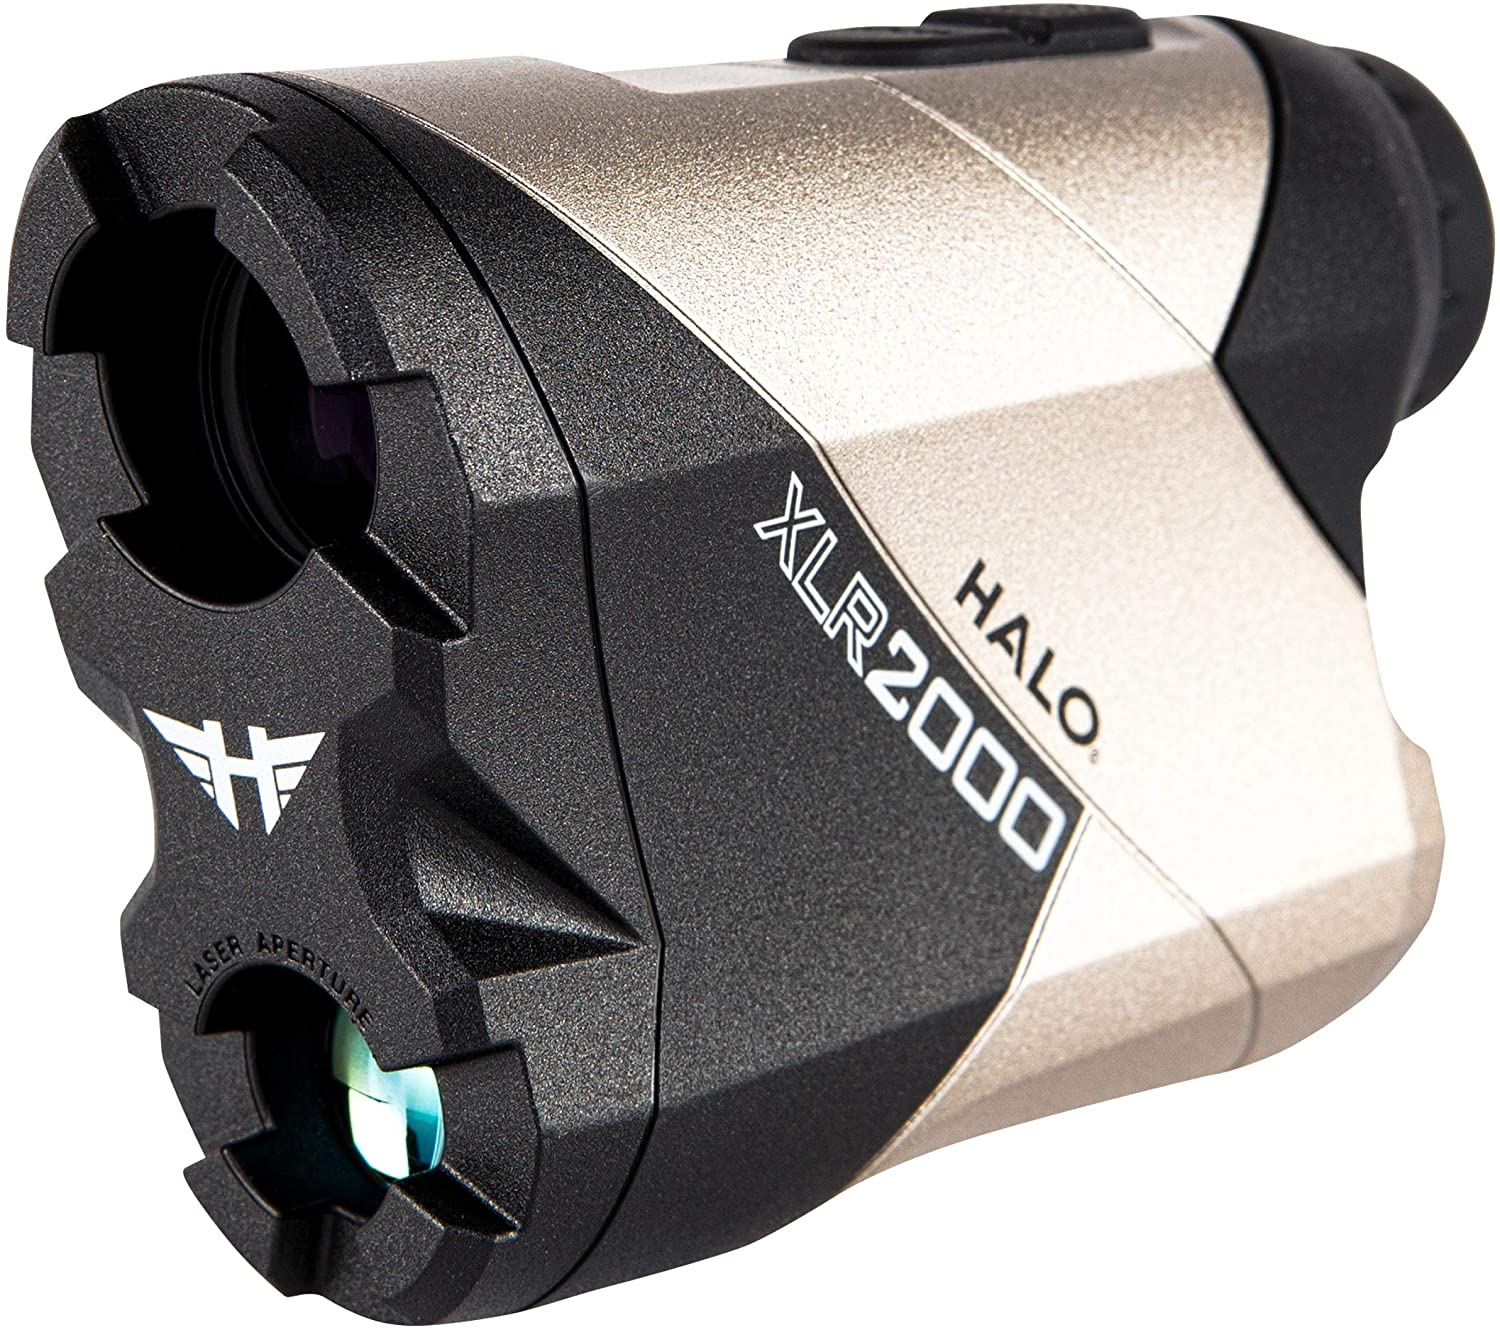 Halo Optics XR2000